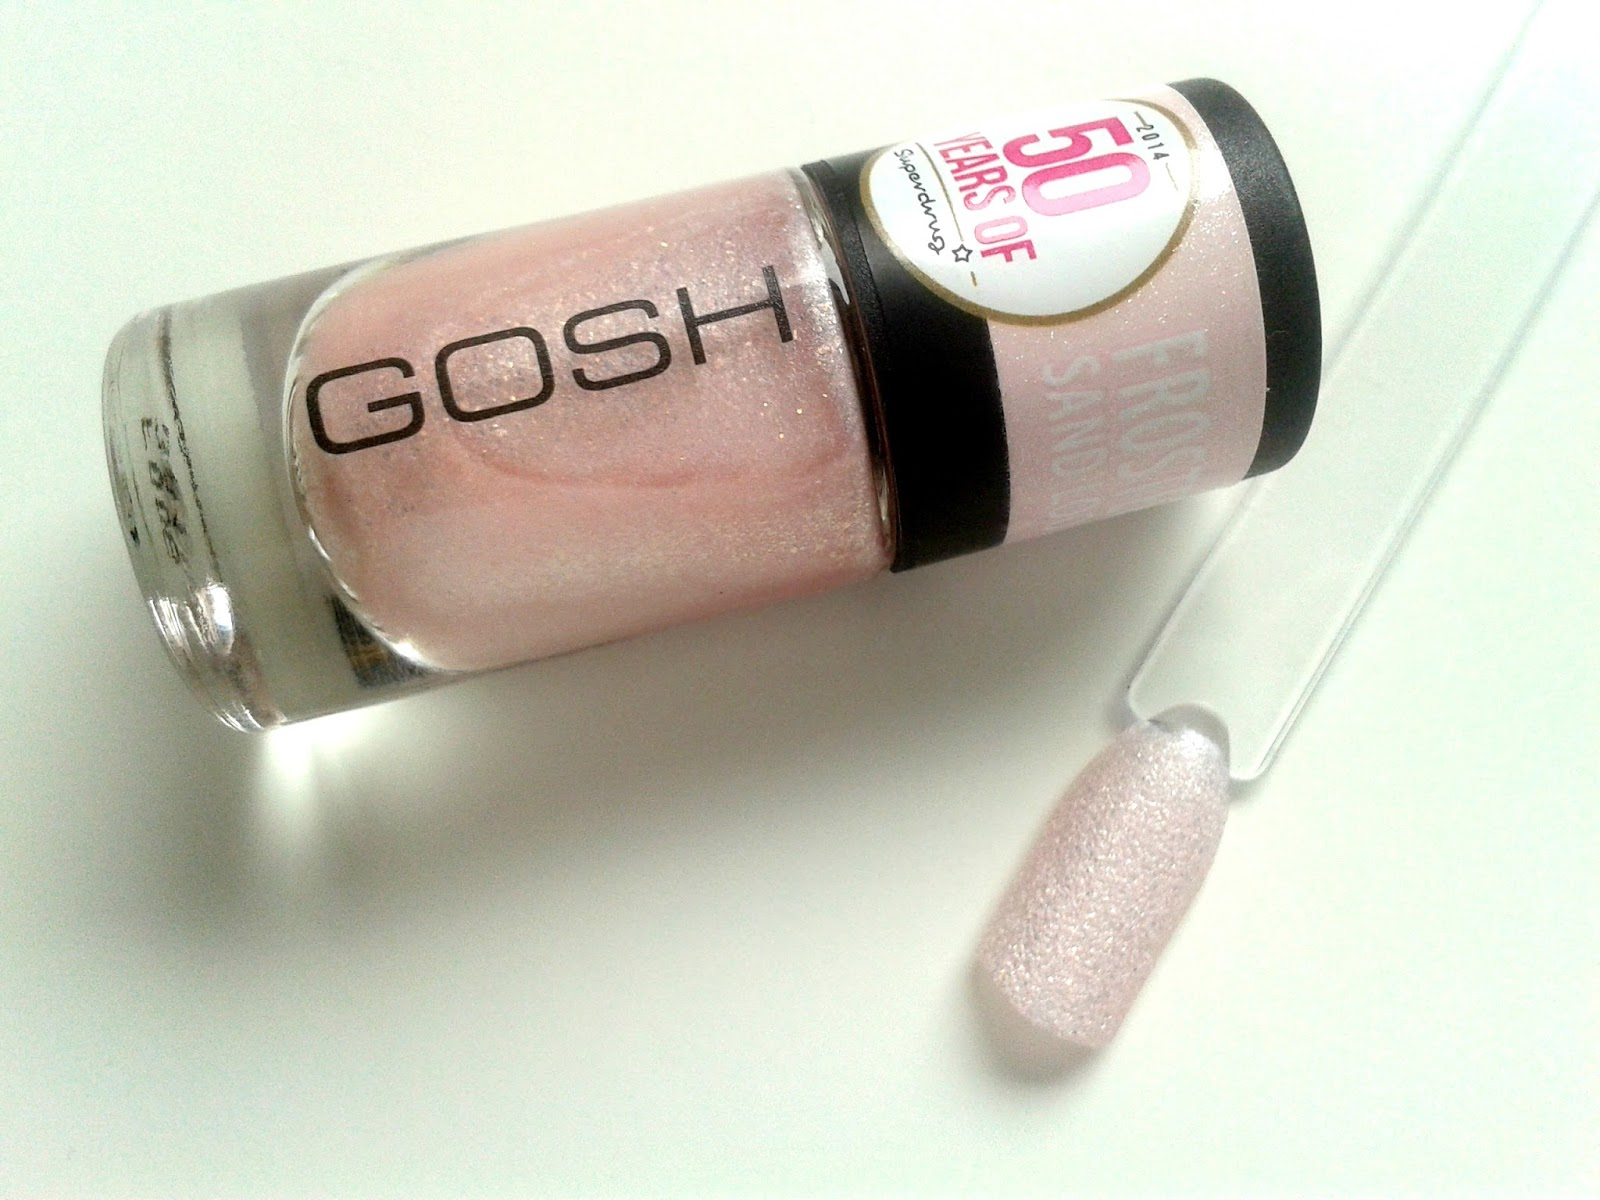 GOSH Frosted Nail Lacquer in Pastel Pink Review Swatch Superdrug 50th Birthday